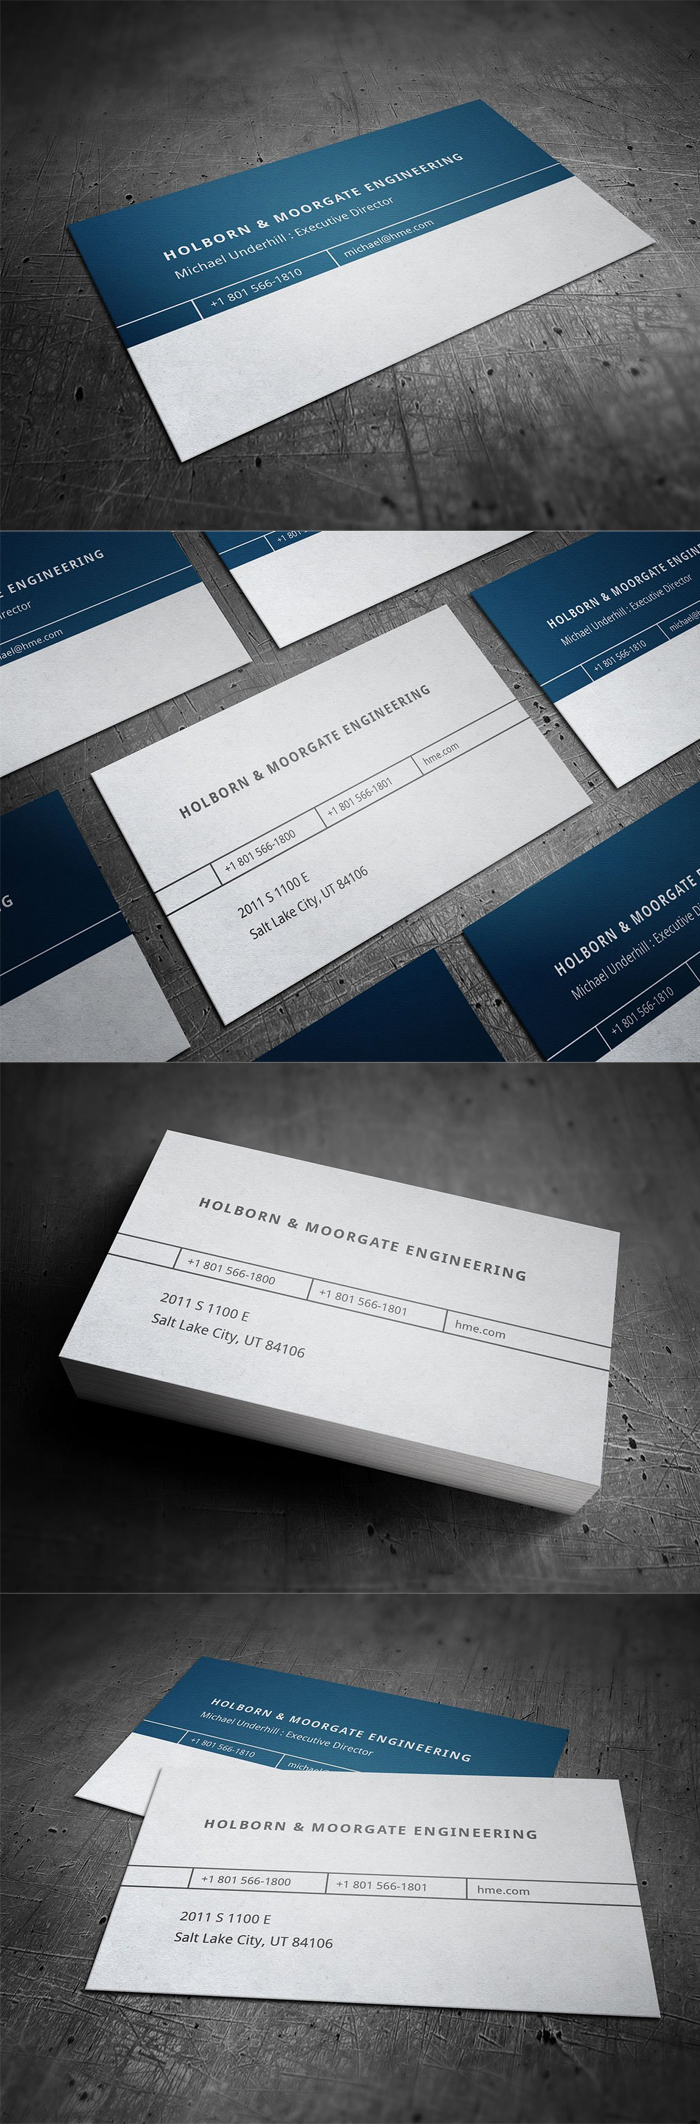 Business card templates engineering choice image card design and corporate engineering business card templates eps business card corporate engineering business card templates eps reheart choice reheart Images